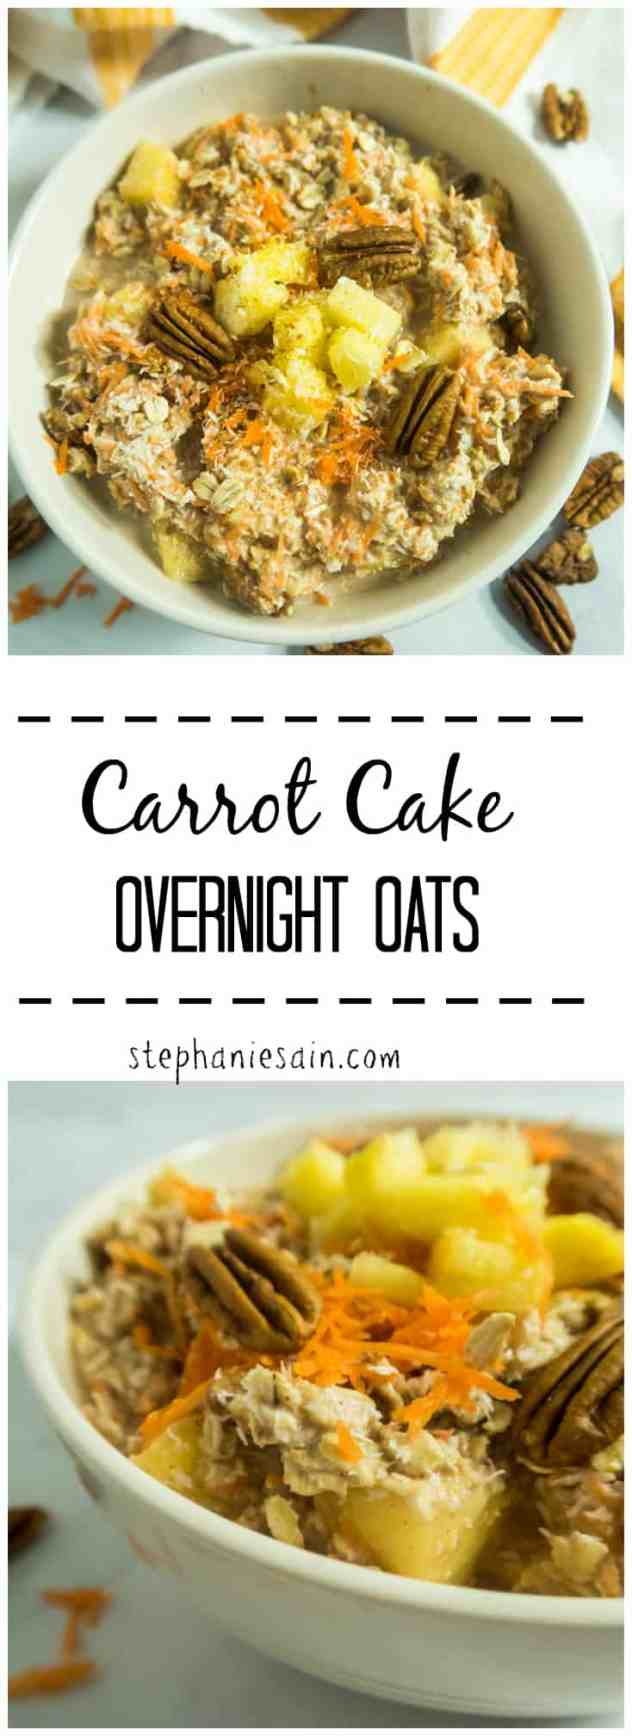 Carrot Cake Overnight Oats are a tasty, healthy breakfast to wake up to Ready to go. It's like having dessert for breakfast. Vegan & Gluten Free.